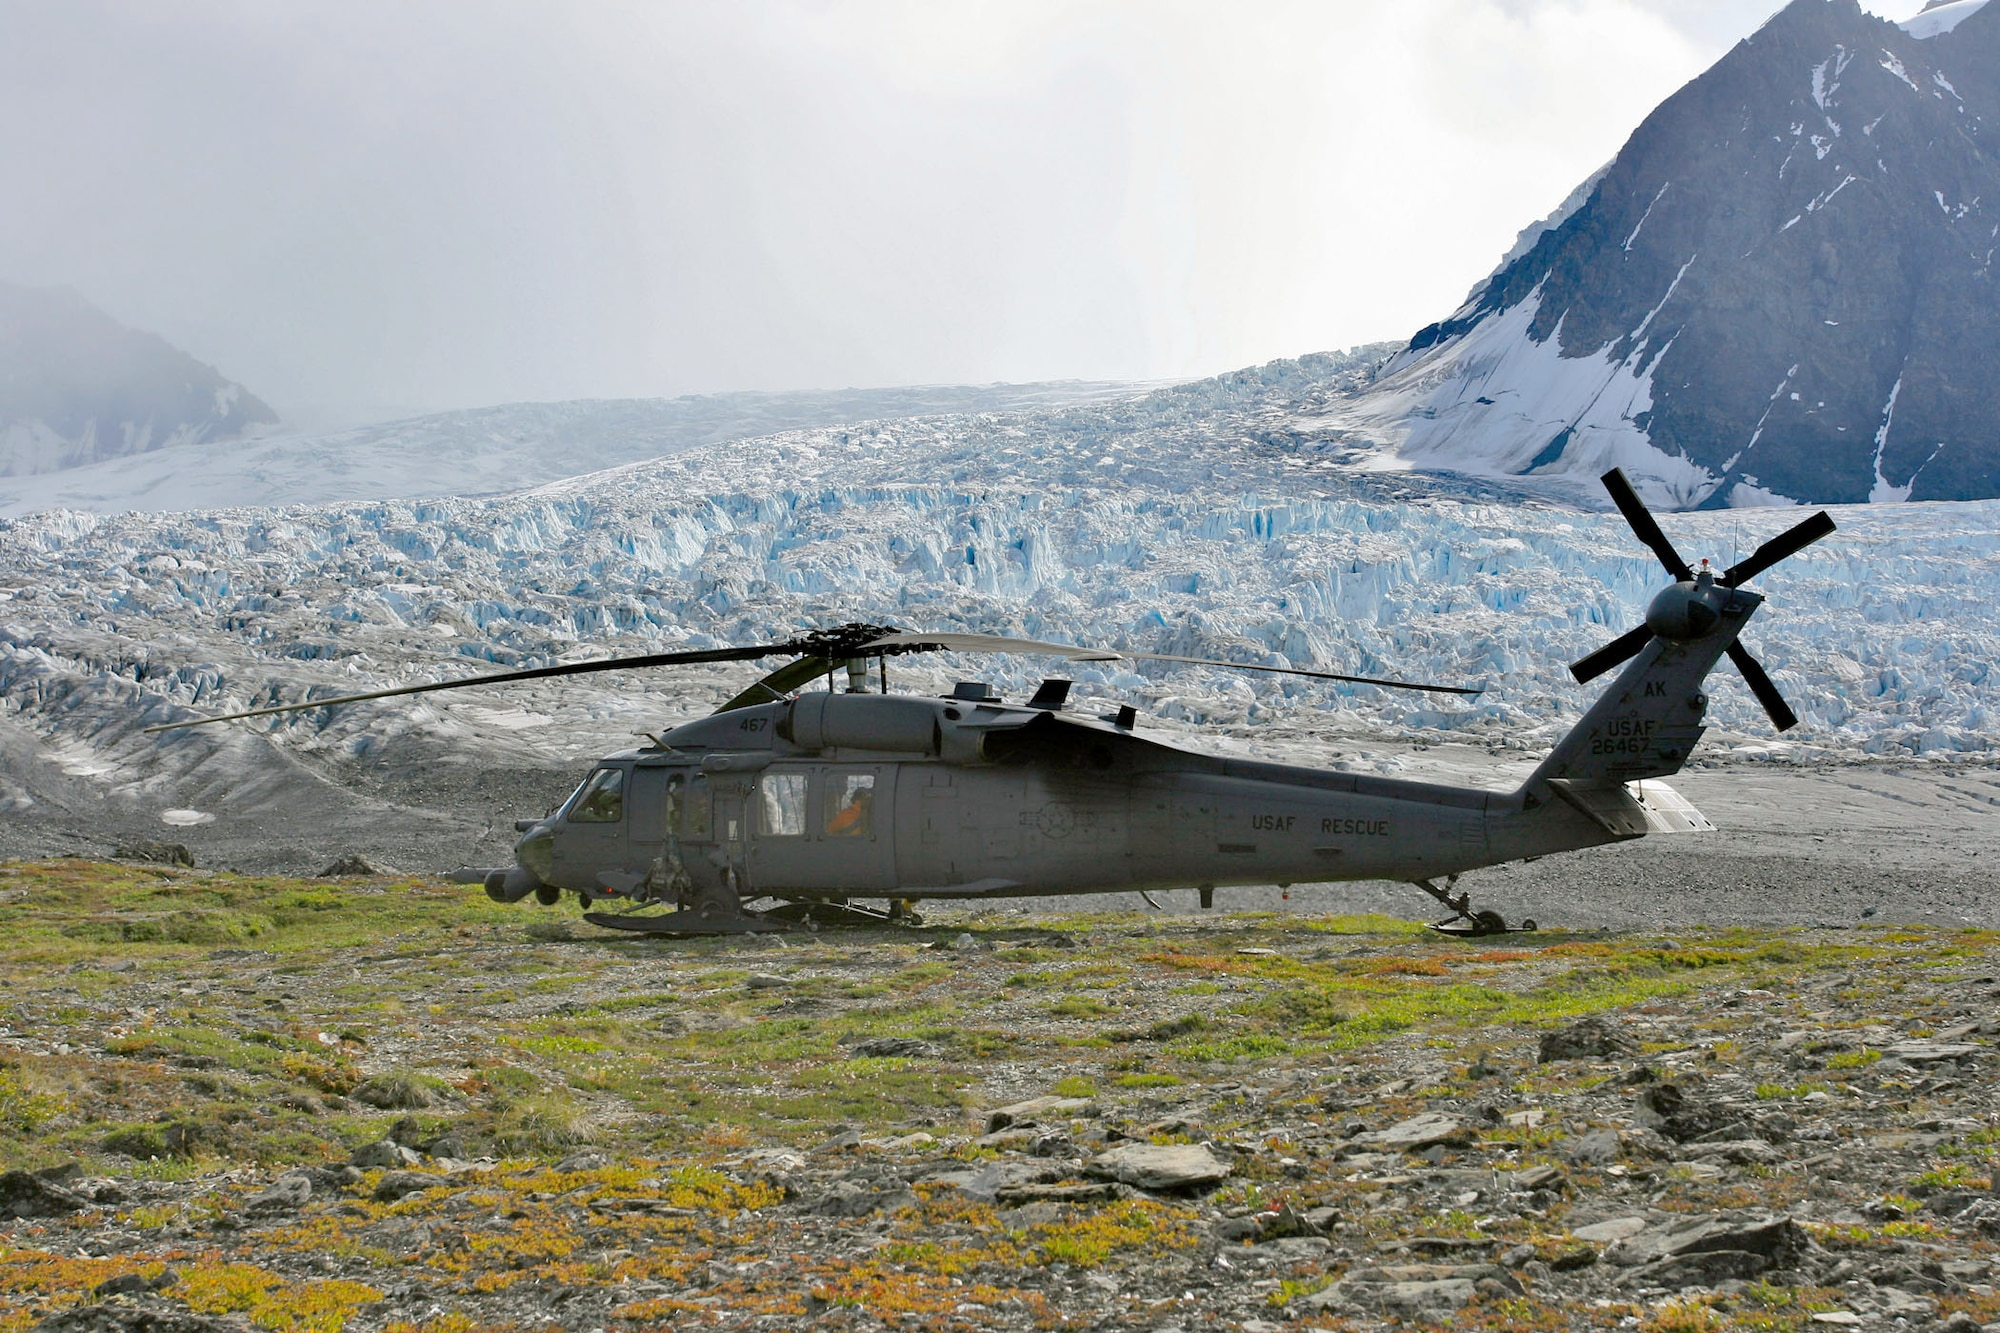 An Alaska Air National Guard HH-60 Pave Hawk waits for the weather to clear before making another attempt to reach the survivors of a plane crash Aug. 8, 2010, five miles from the Knik Glacier crash site. (Alaska National Guard photo/Master Sgt. Sean Mitchell)